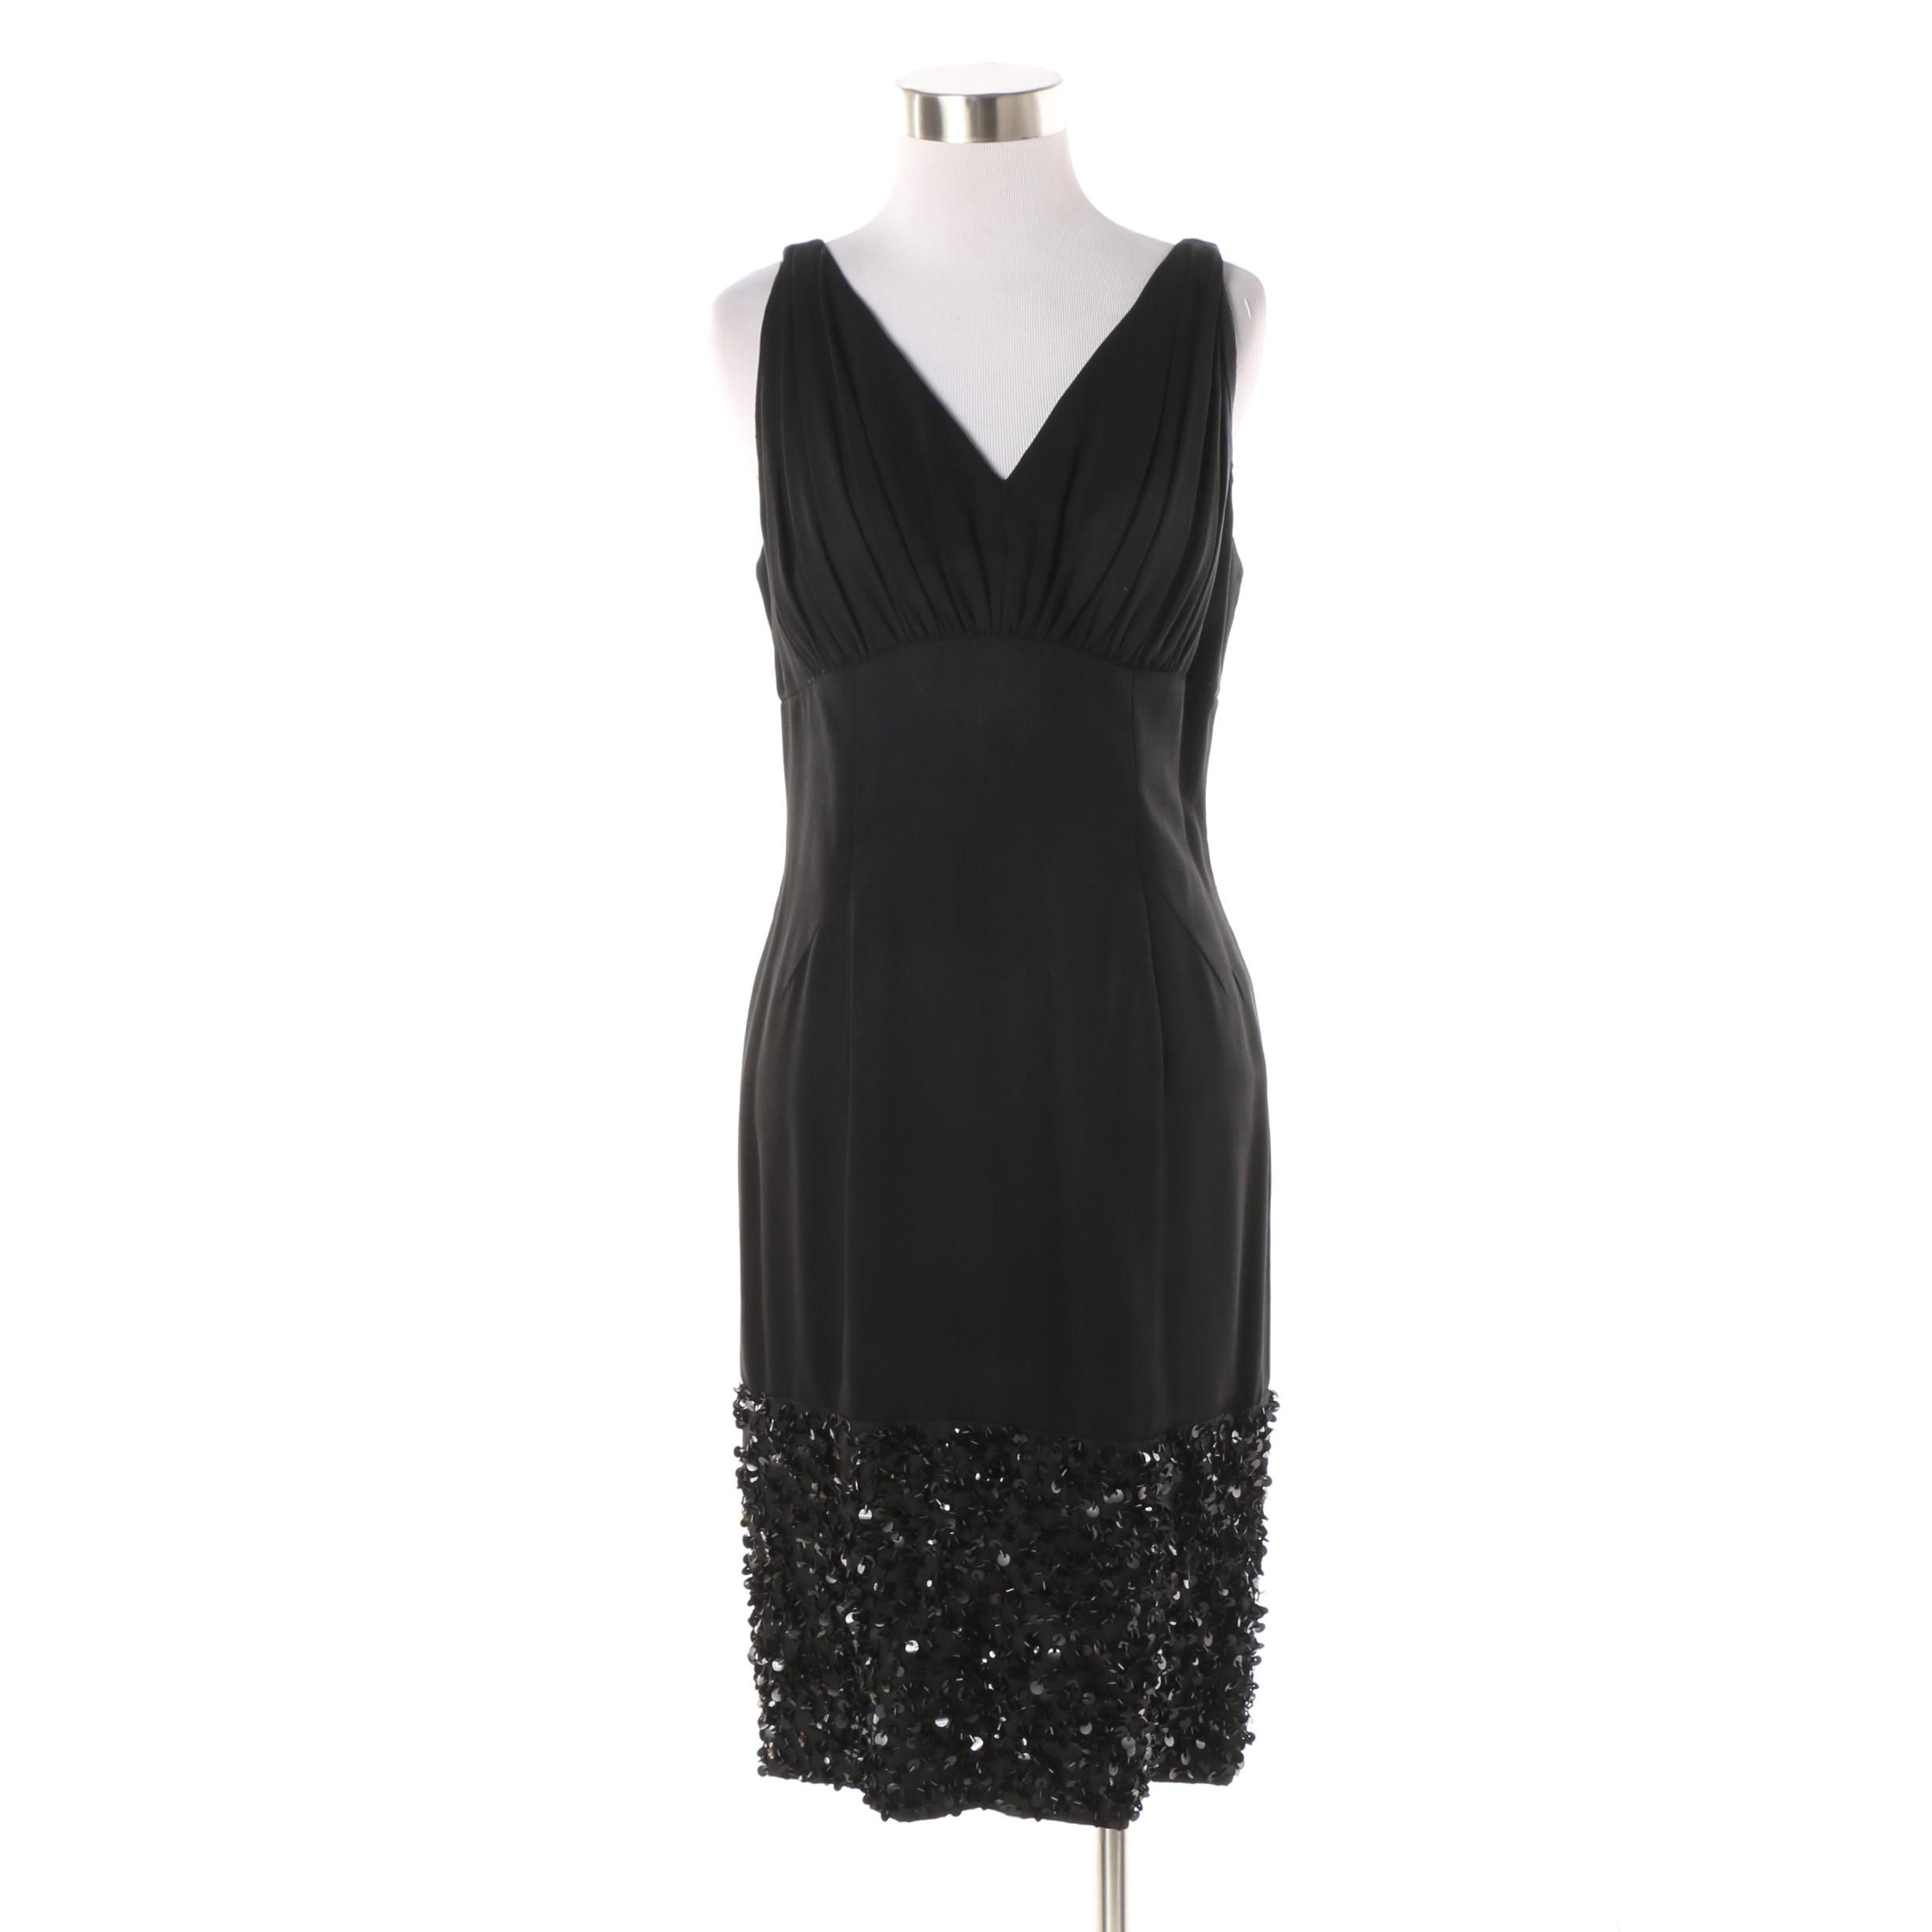 1960s Vintage Kay Martin Sleeveless Cocktail Dress with Sequin Accents